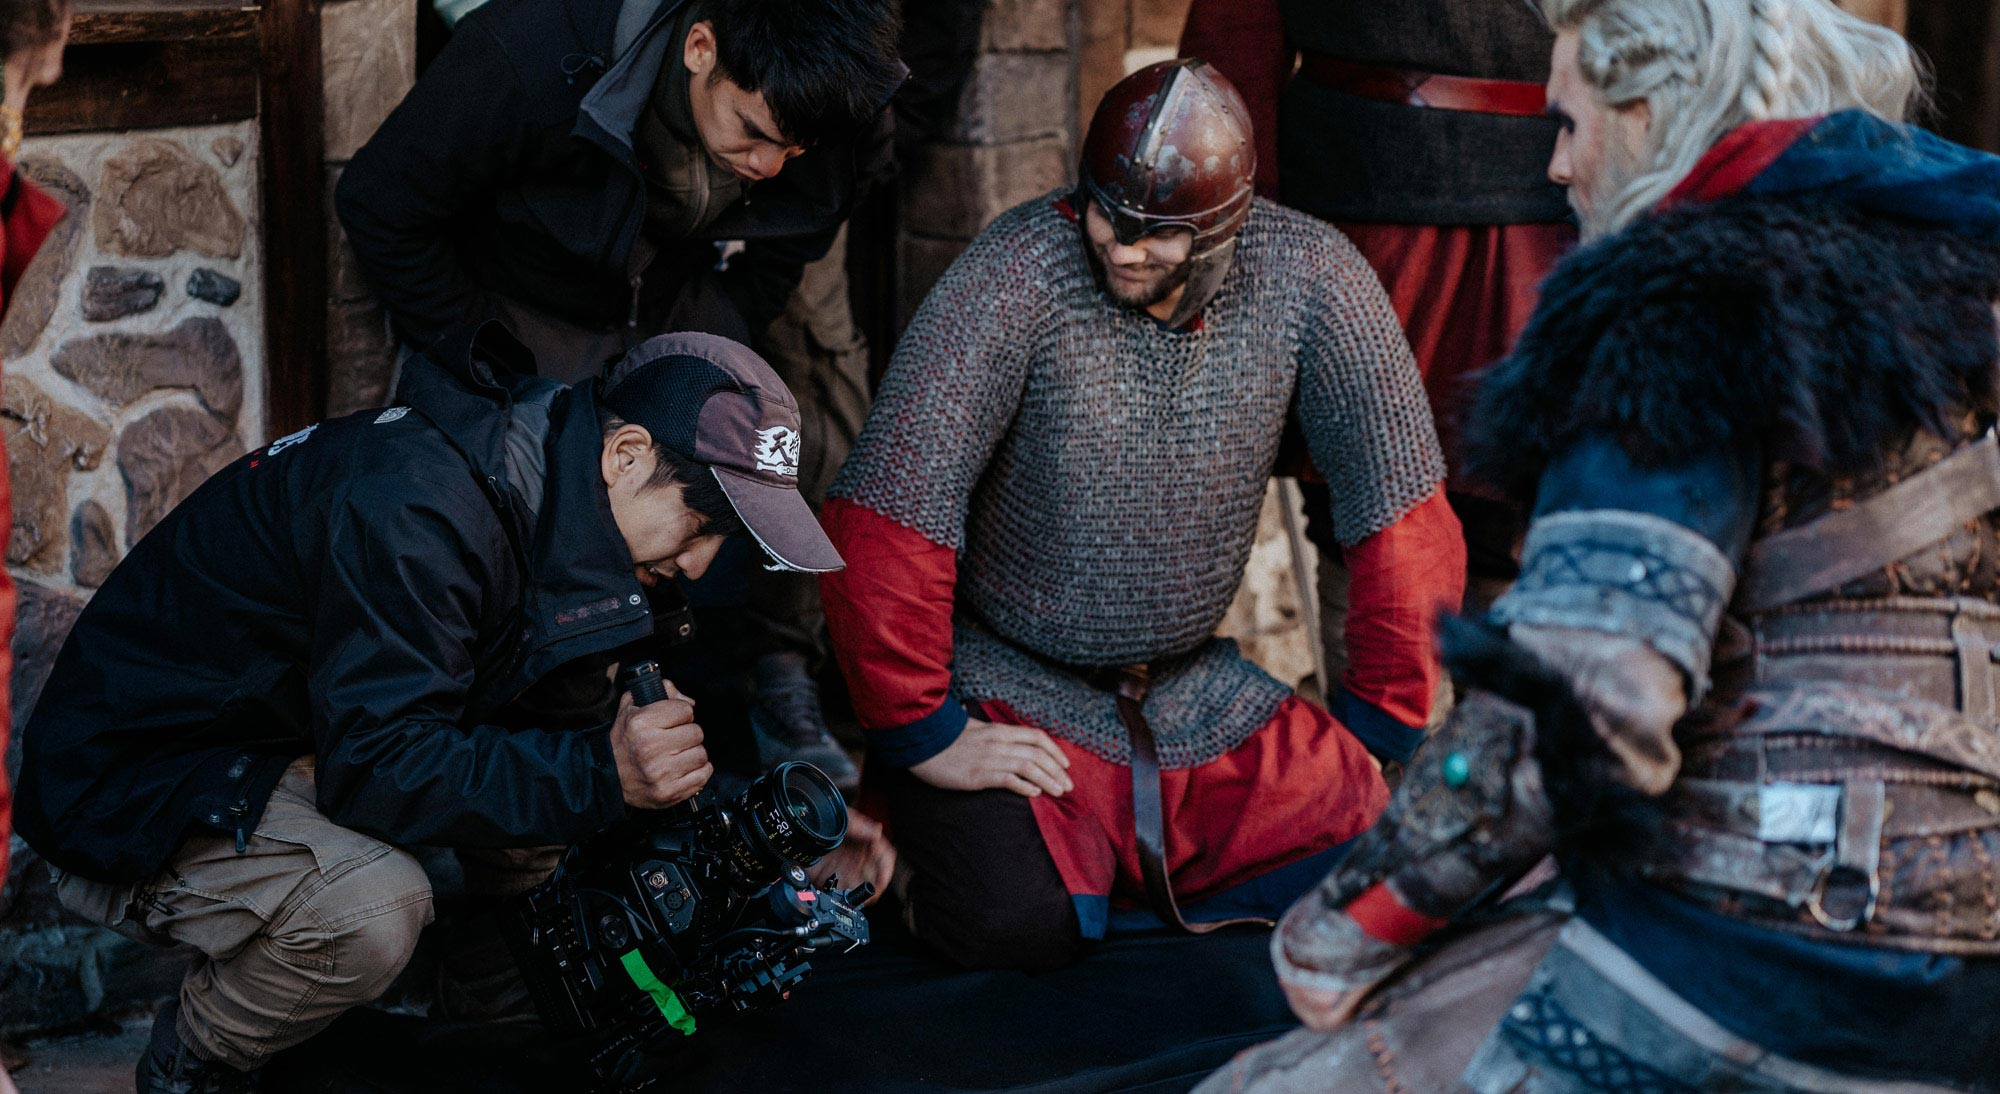 Assassin's Creed Valhalla short film: a touch of Blackmagic